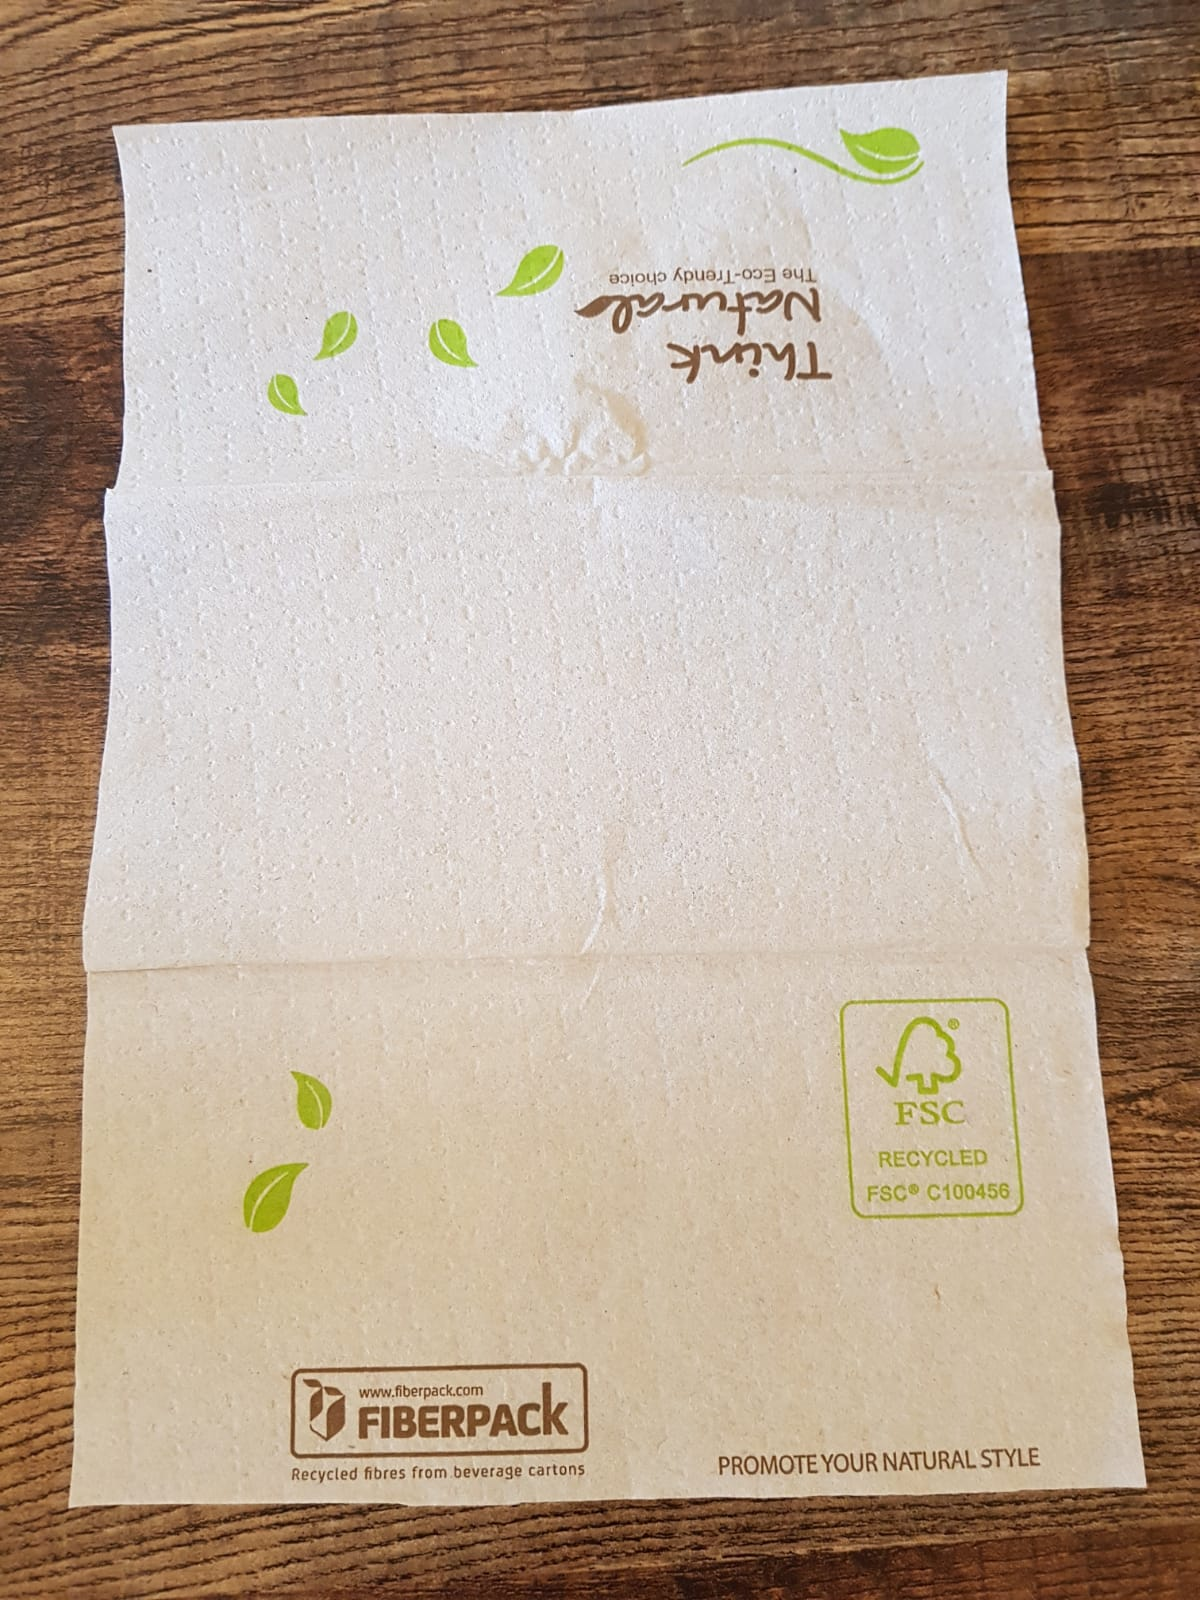 Recycled, compostable napkins.